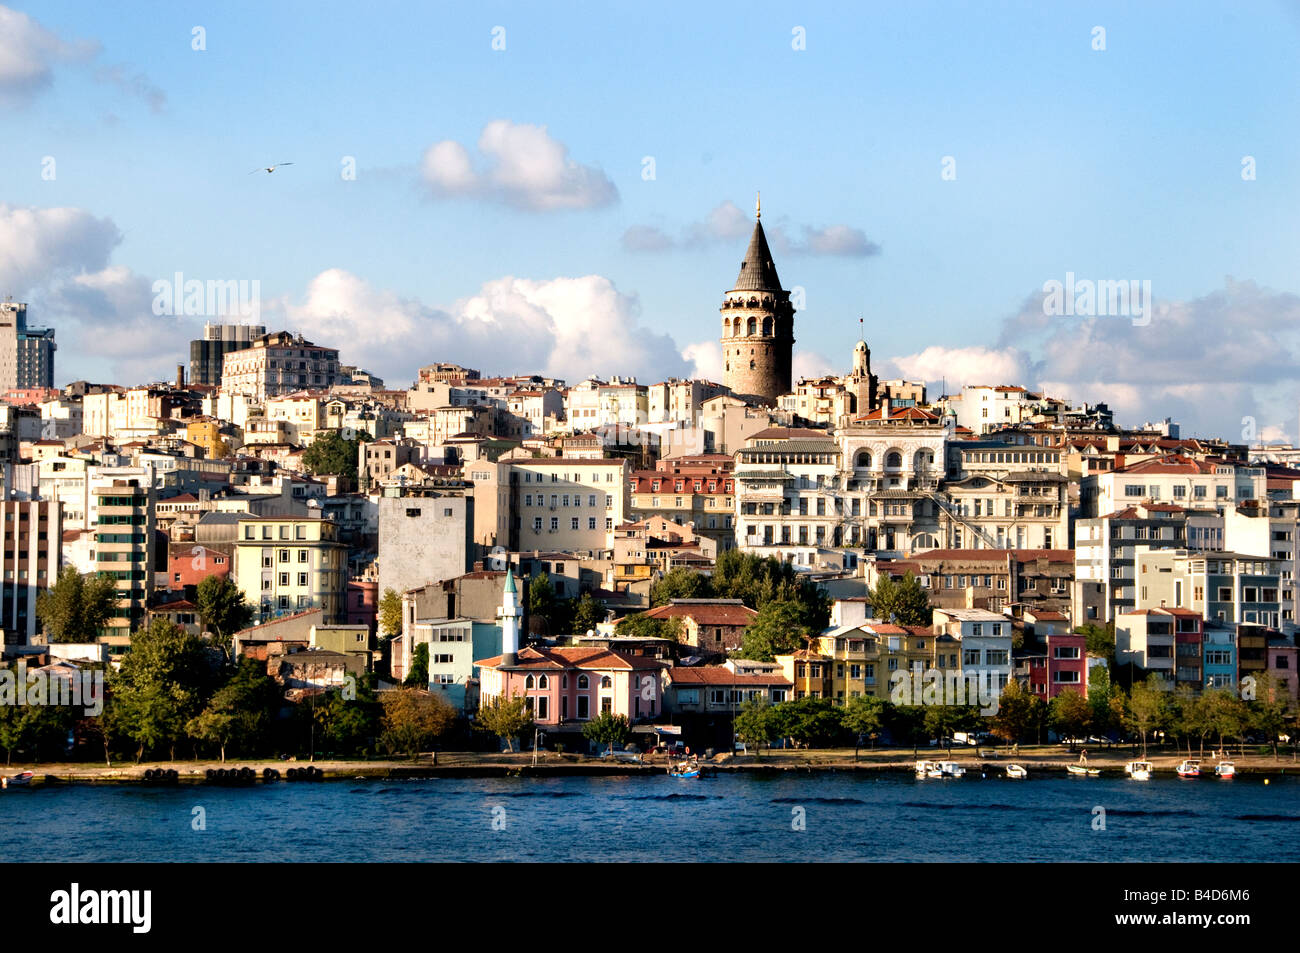 The Galata Tower Beyoglu The Golden Horn Istanbul Turkey - Stock Image